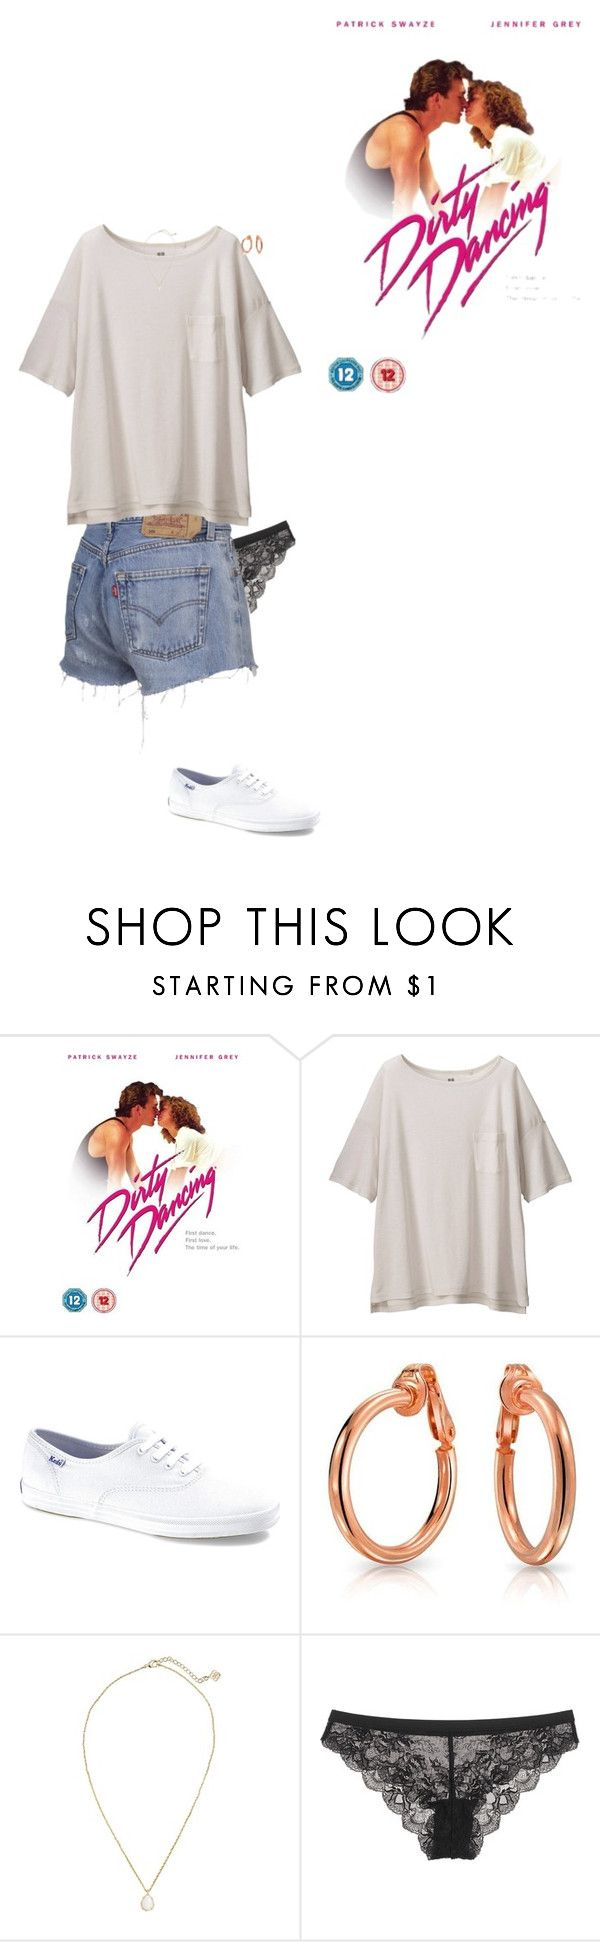 """""""I have an unhealthy obsession with Dirty Dancing"""" by carolfaisca ❤ liked on Polyvore featuring Uniqlo, Keds, Bling Jewelry, Kendra Scott, Calvin Klein Underwear, women's clothing, women, female, woman and misses"""